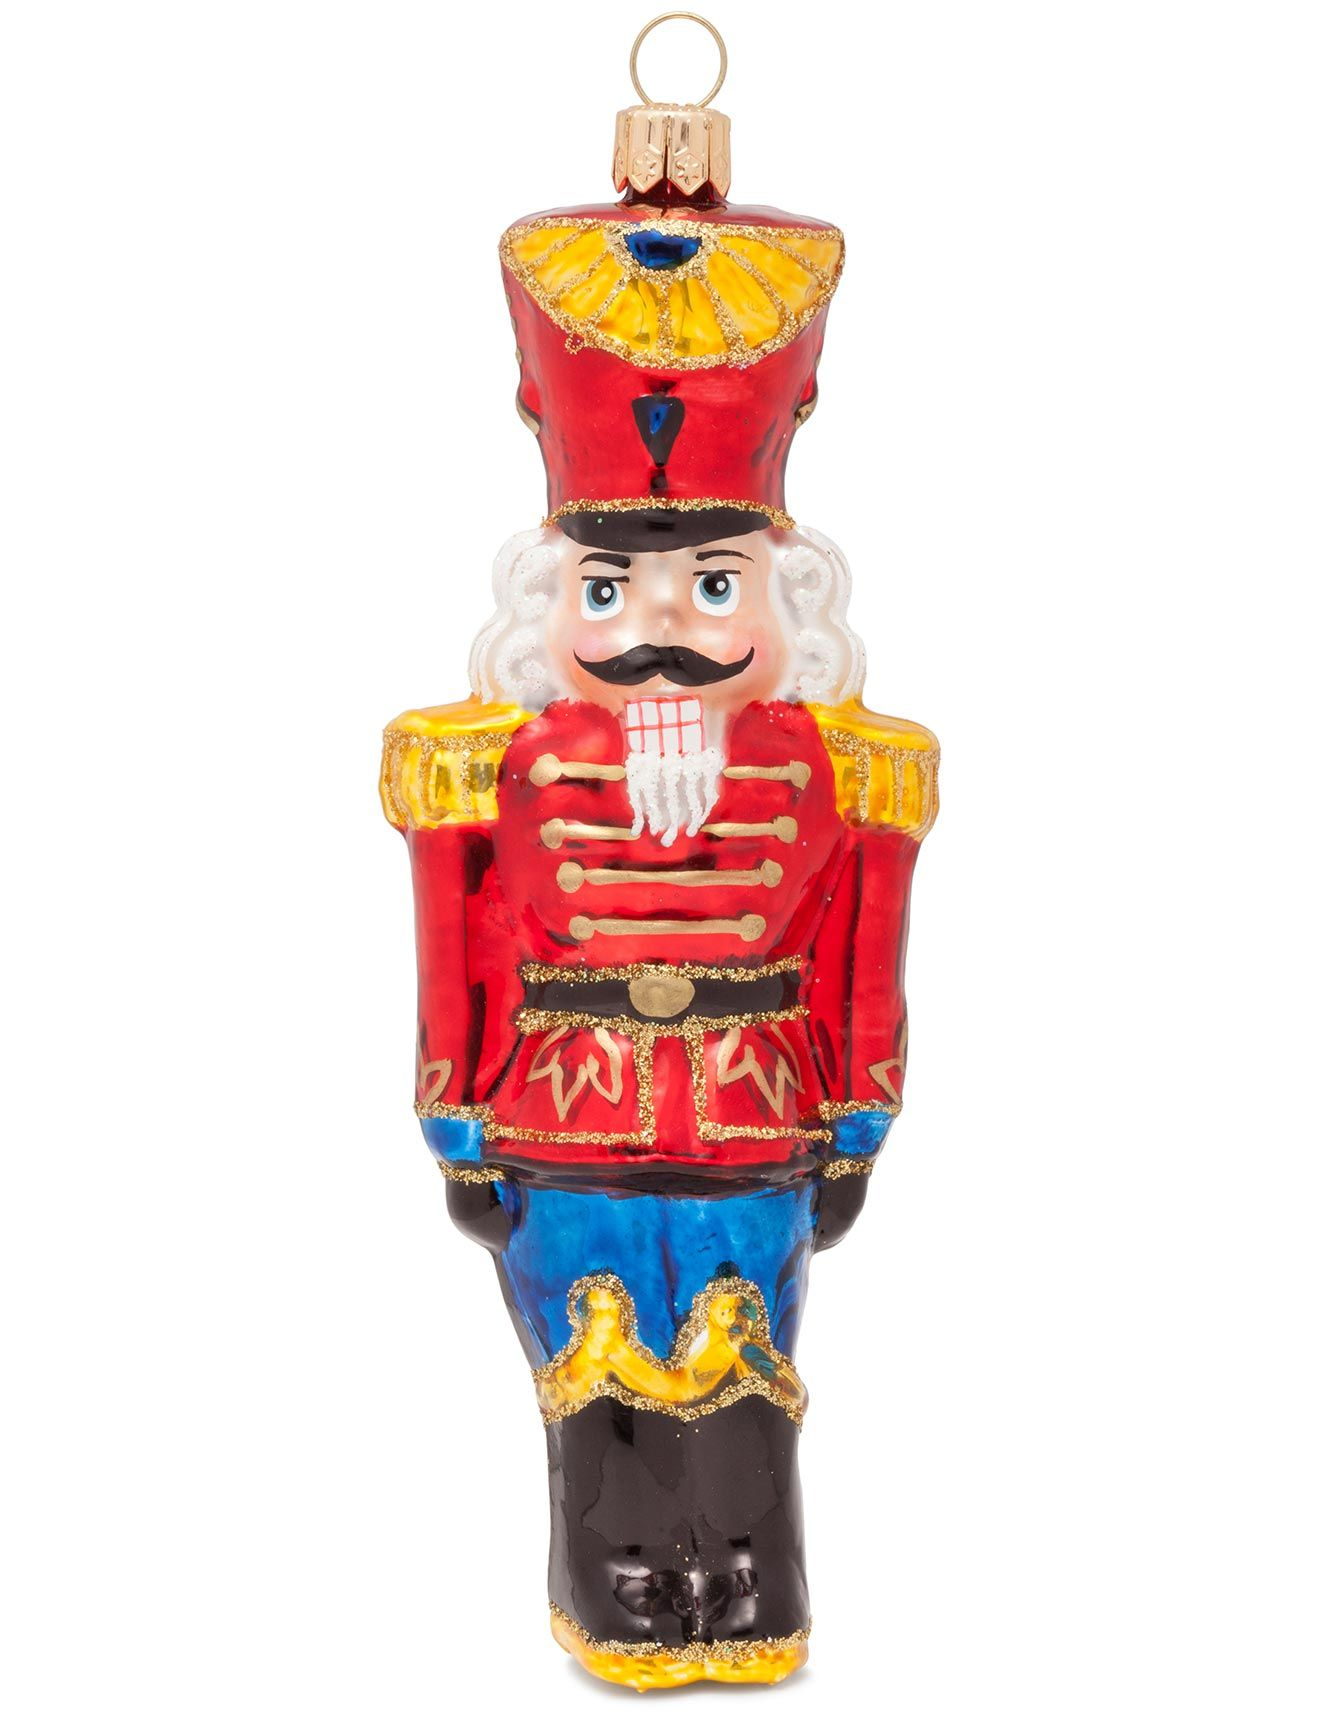 Impuls Nutcracker Ornament At David Jones Store #Christmas #Decorations #Classic